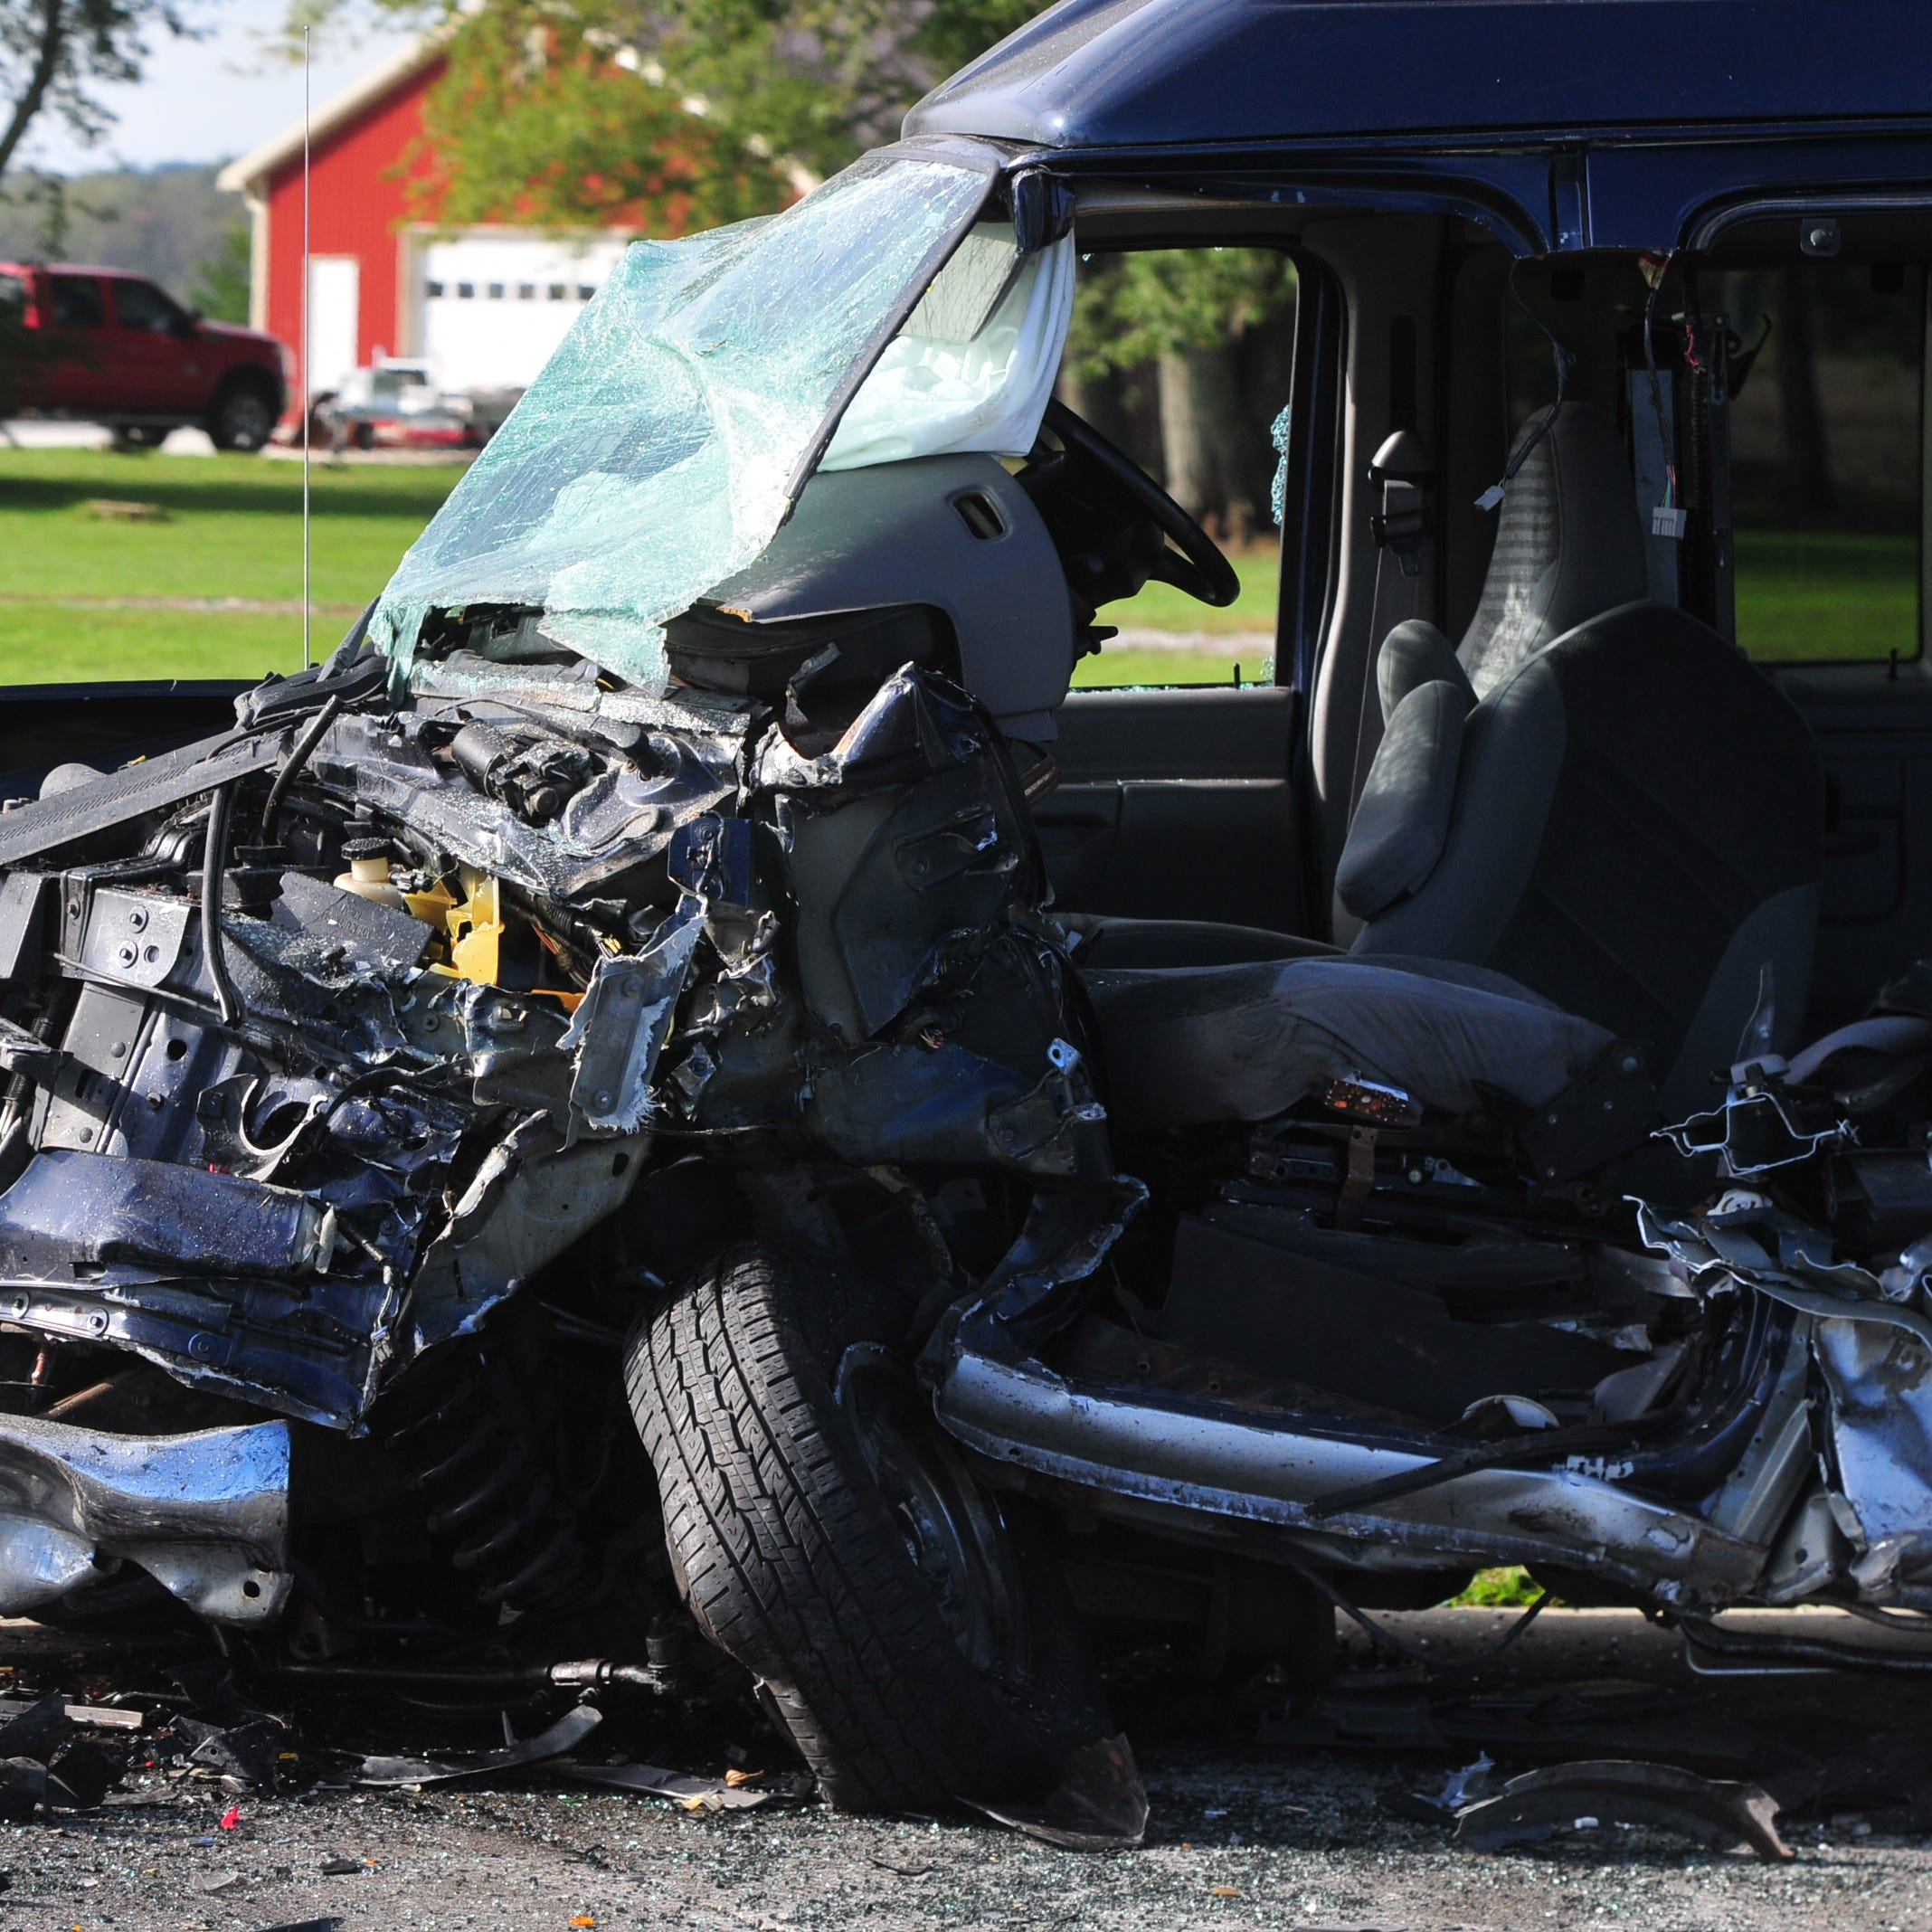 Teresa McNew, the driver of a Ford E-150 van, was extricated from the van by Richmond Fire Department personnel after a Tuesday morning accident on Salisbury Road.